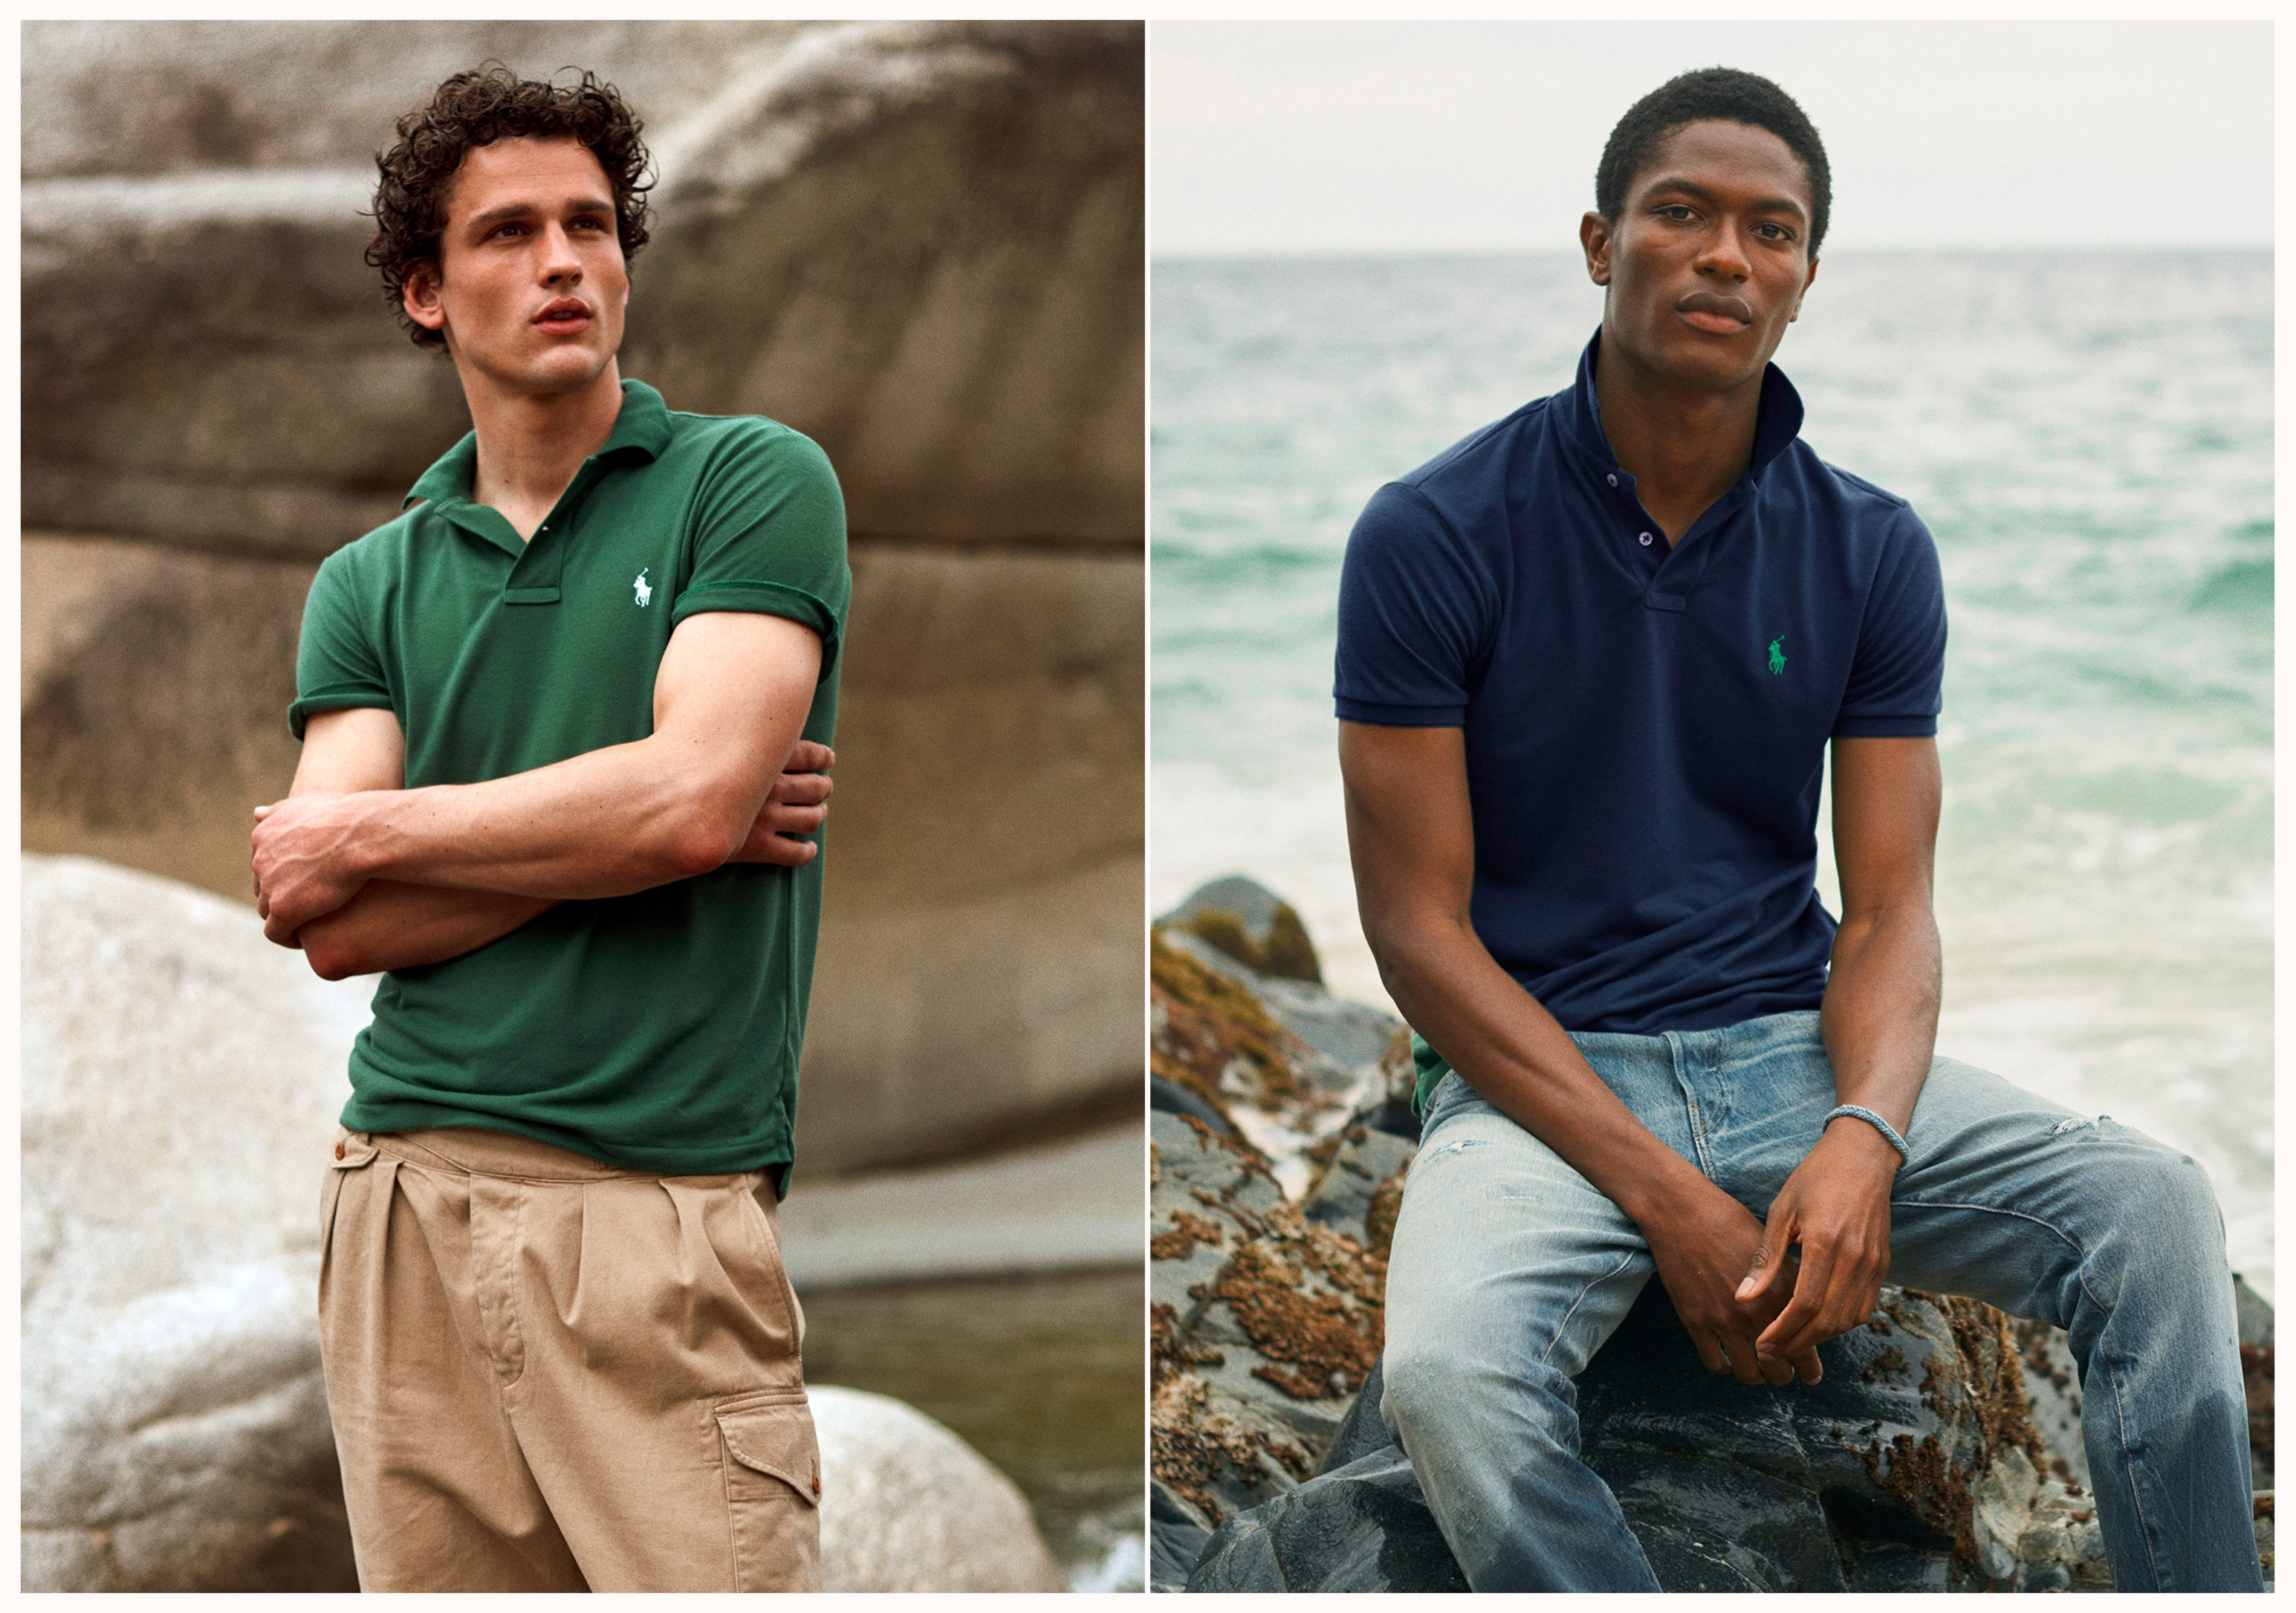 Ralph Lauren is now making polos out of recycled plastic bottles